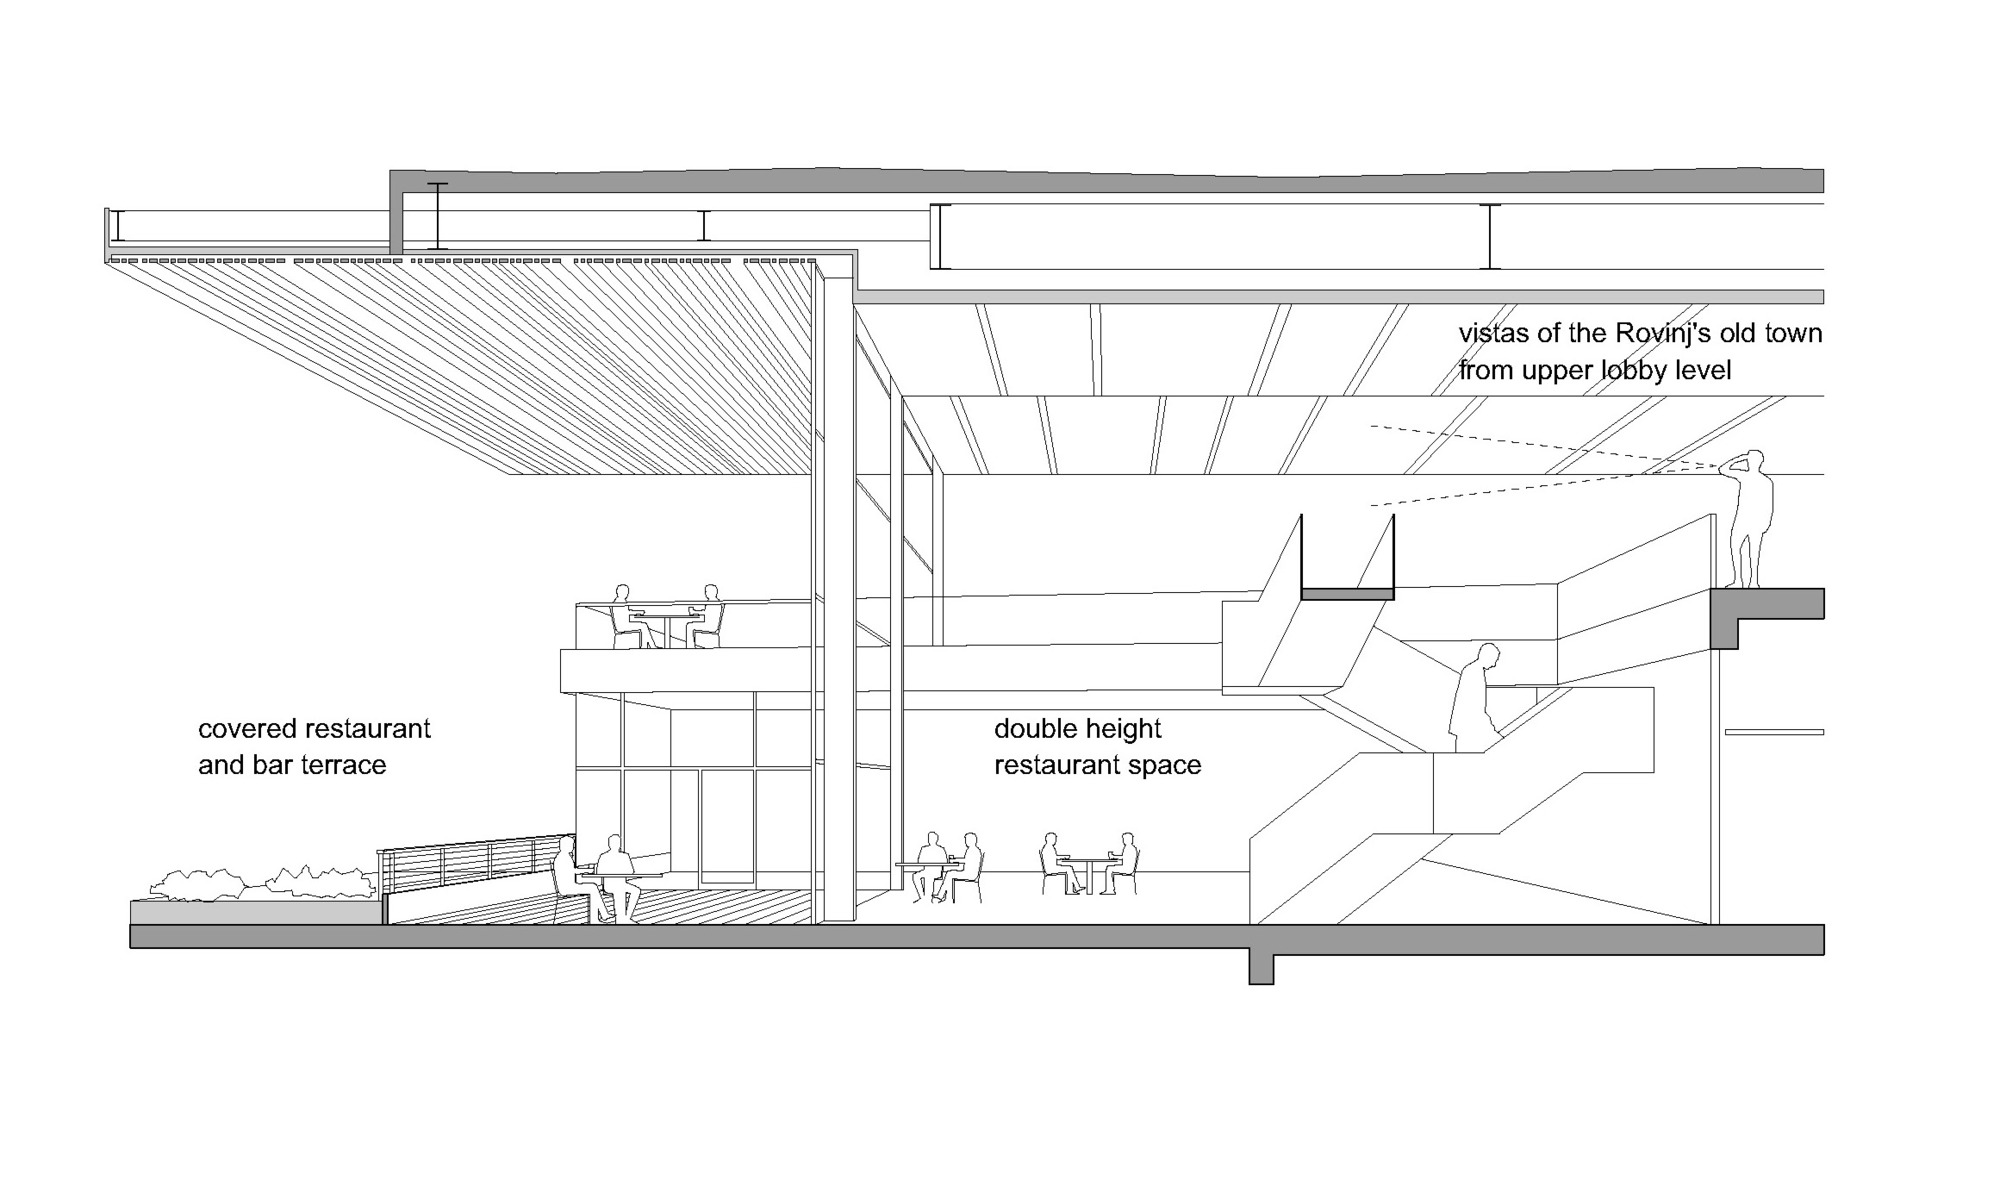 m13 _3LHD_202_GPHR_perspective_double_height_restaurant.jpg